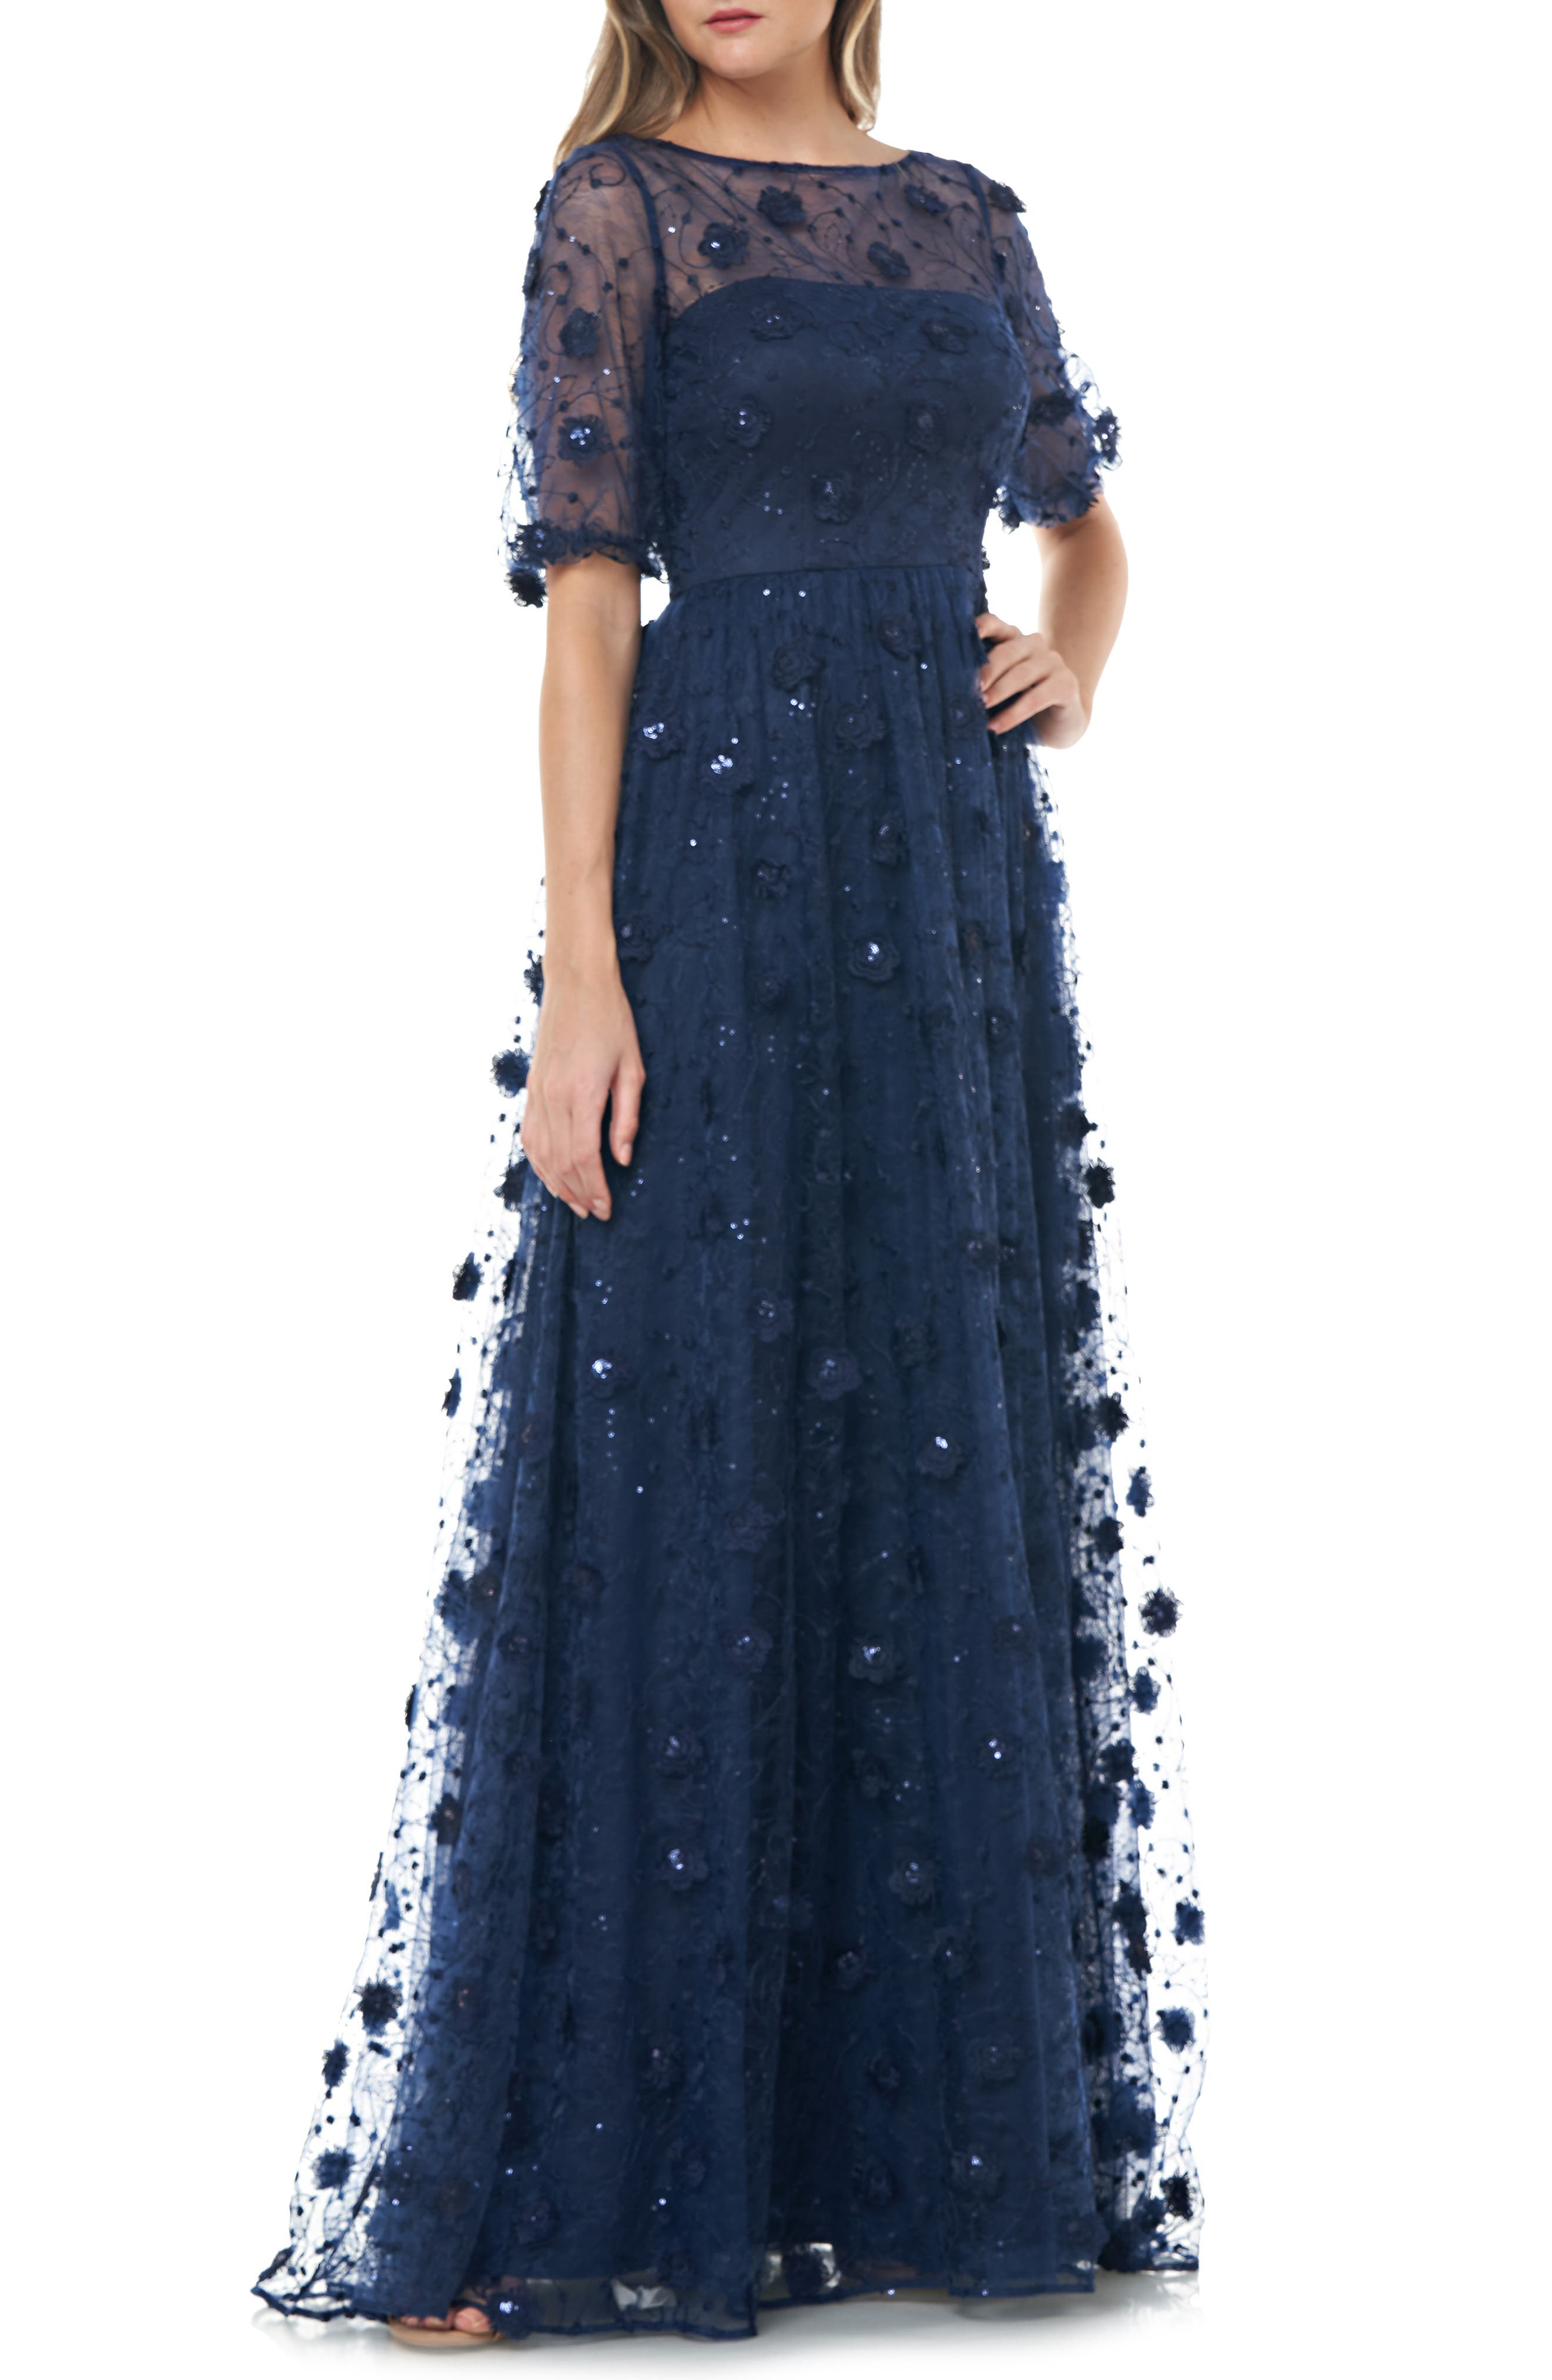 Edwardian Evening Gowns , Ballgowns, Formal Dresses Womens Carmen Marc Valvo Infusion 3D Embroidered Lace Gown $498.00 AT vintagedancer.com